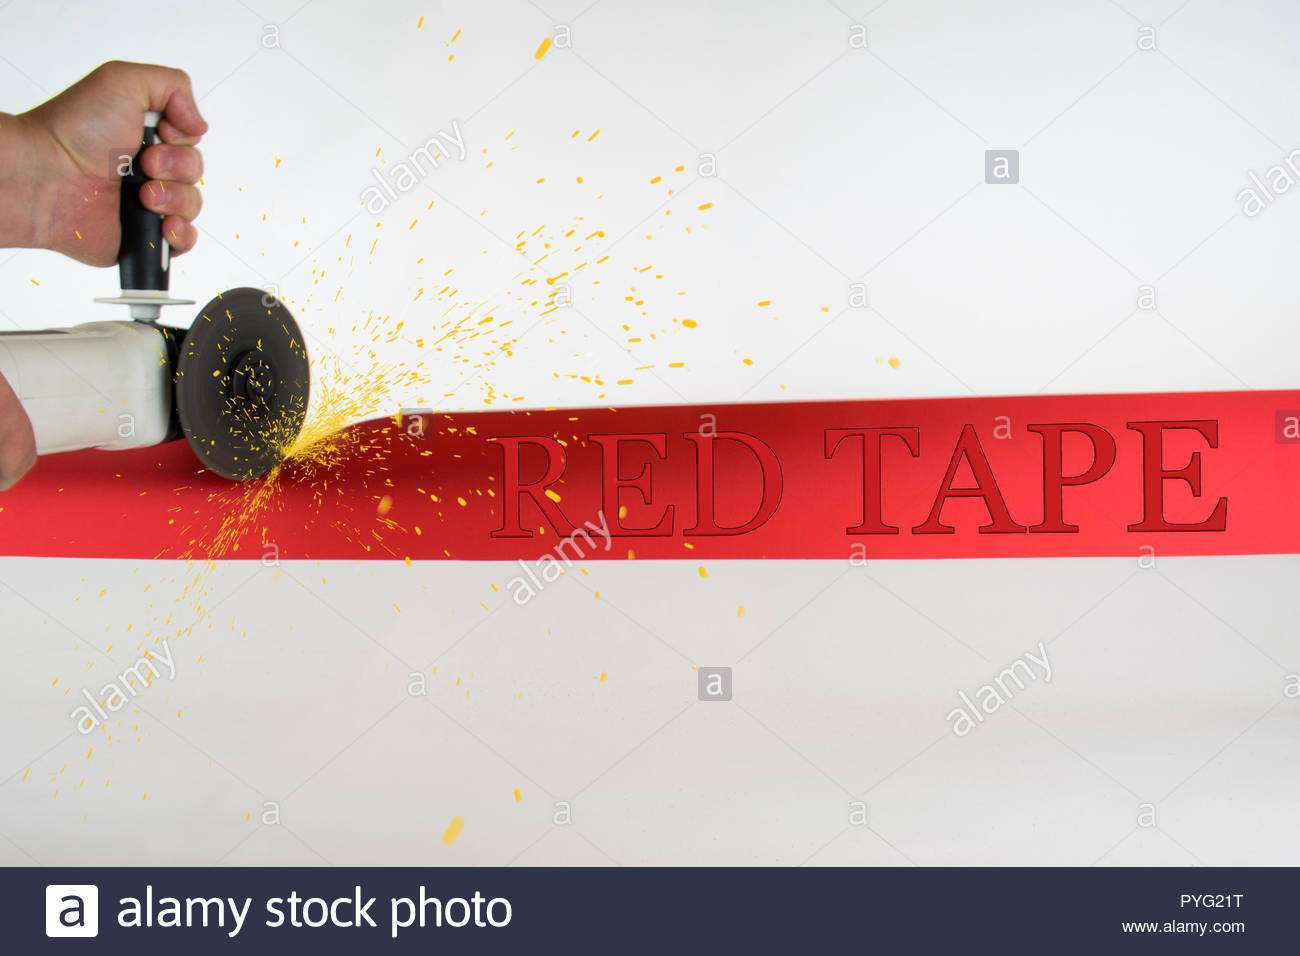 Red tape is an idiom that refers to excessive regulation or rigid conformity to formal rules that is considered redundant or bureaucratic and hinders  - Stock Image